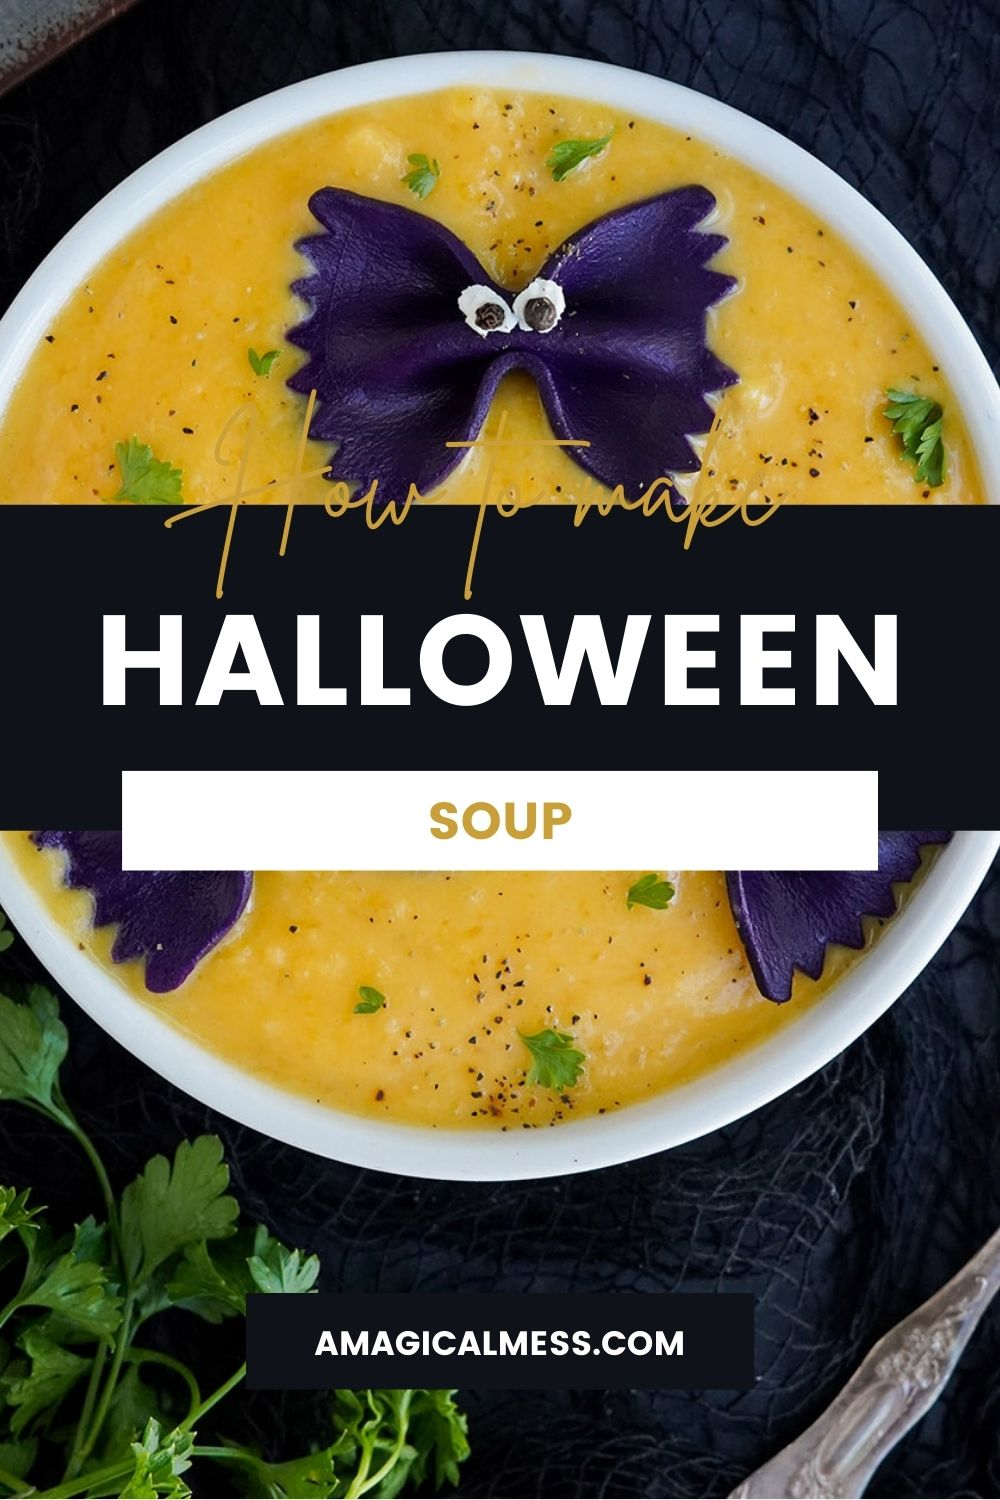 Bowl of soup with black pasta to look like bats.